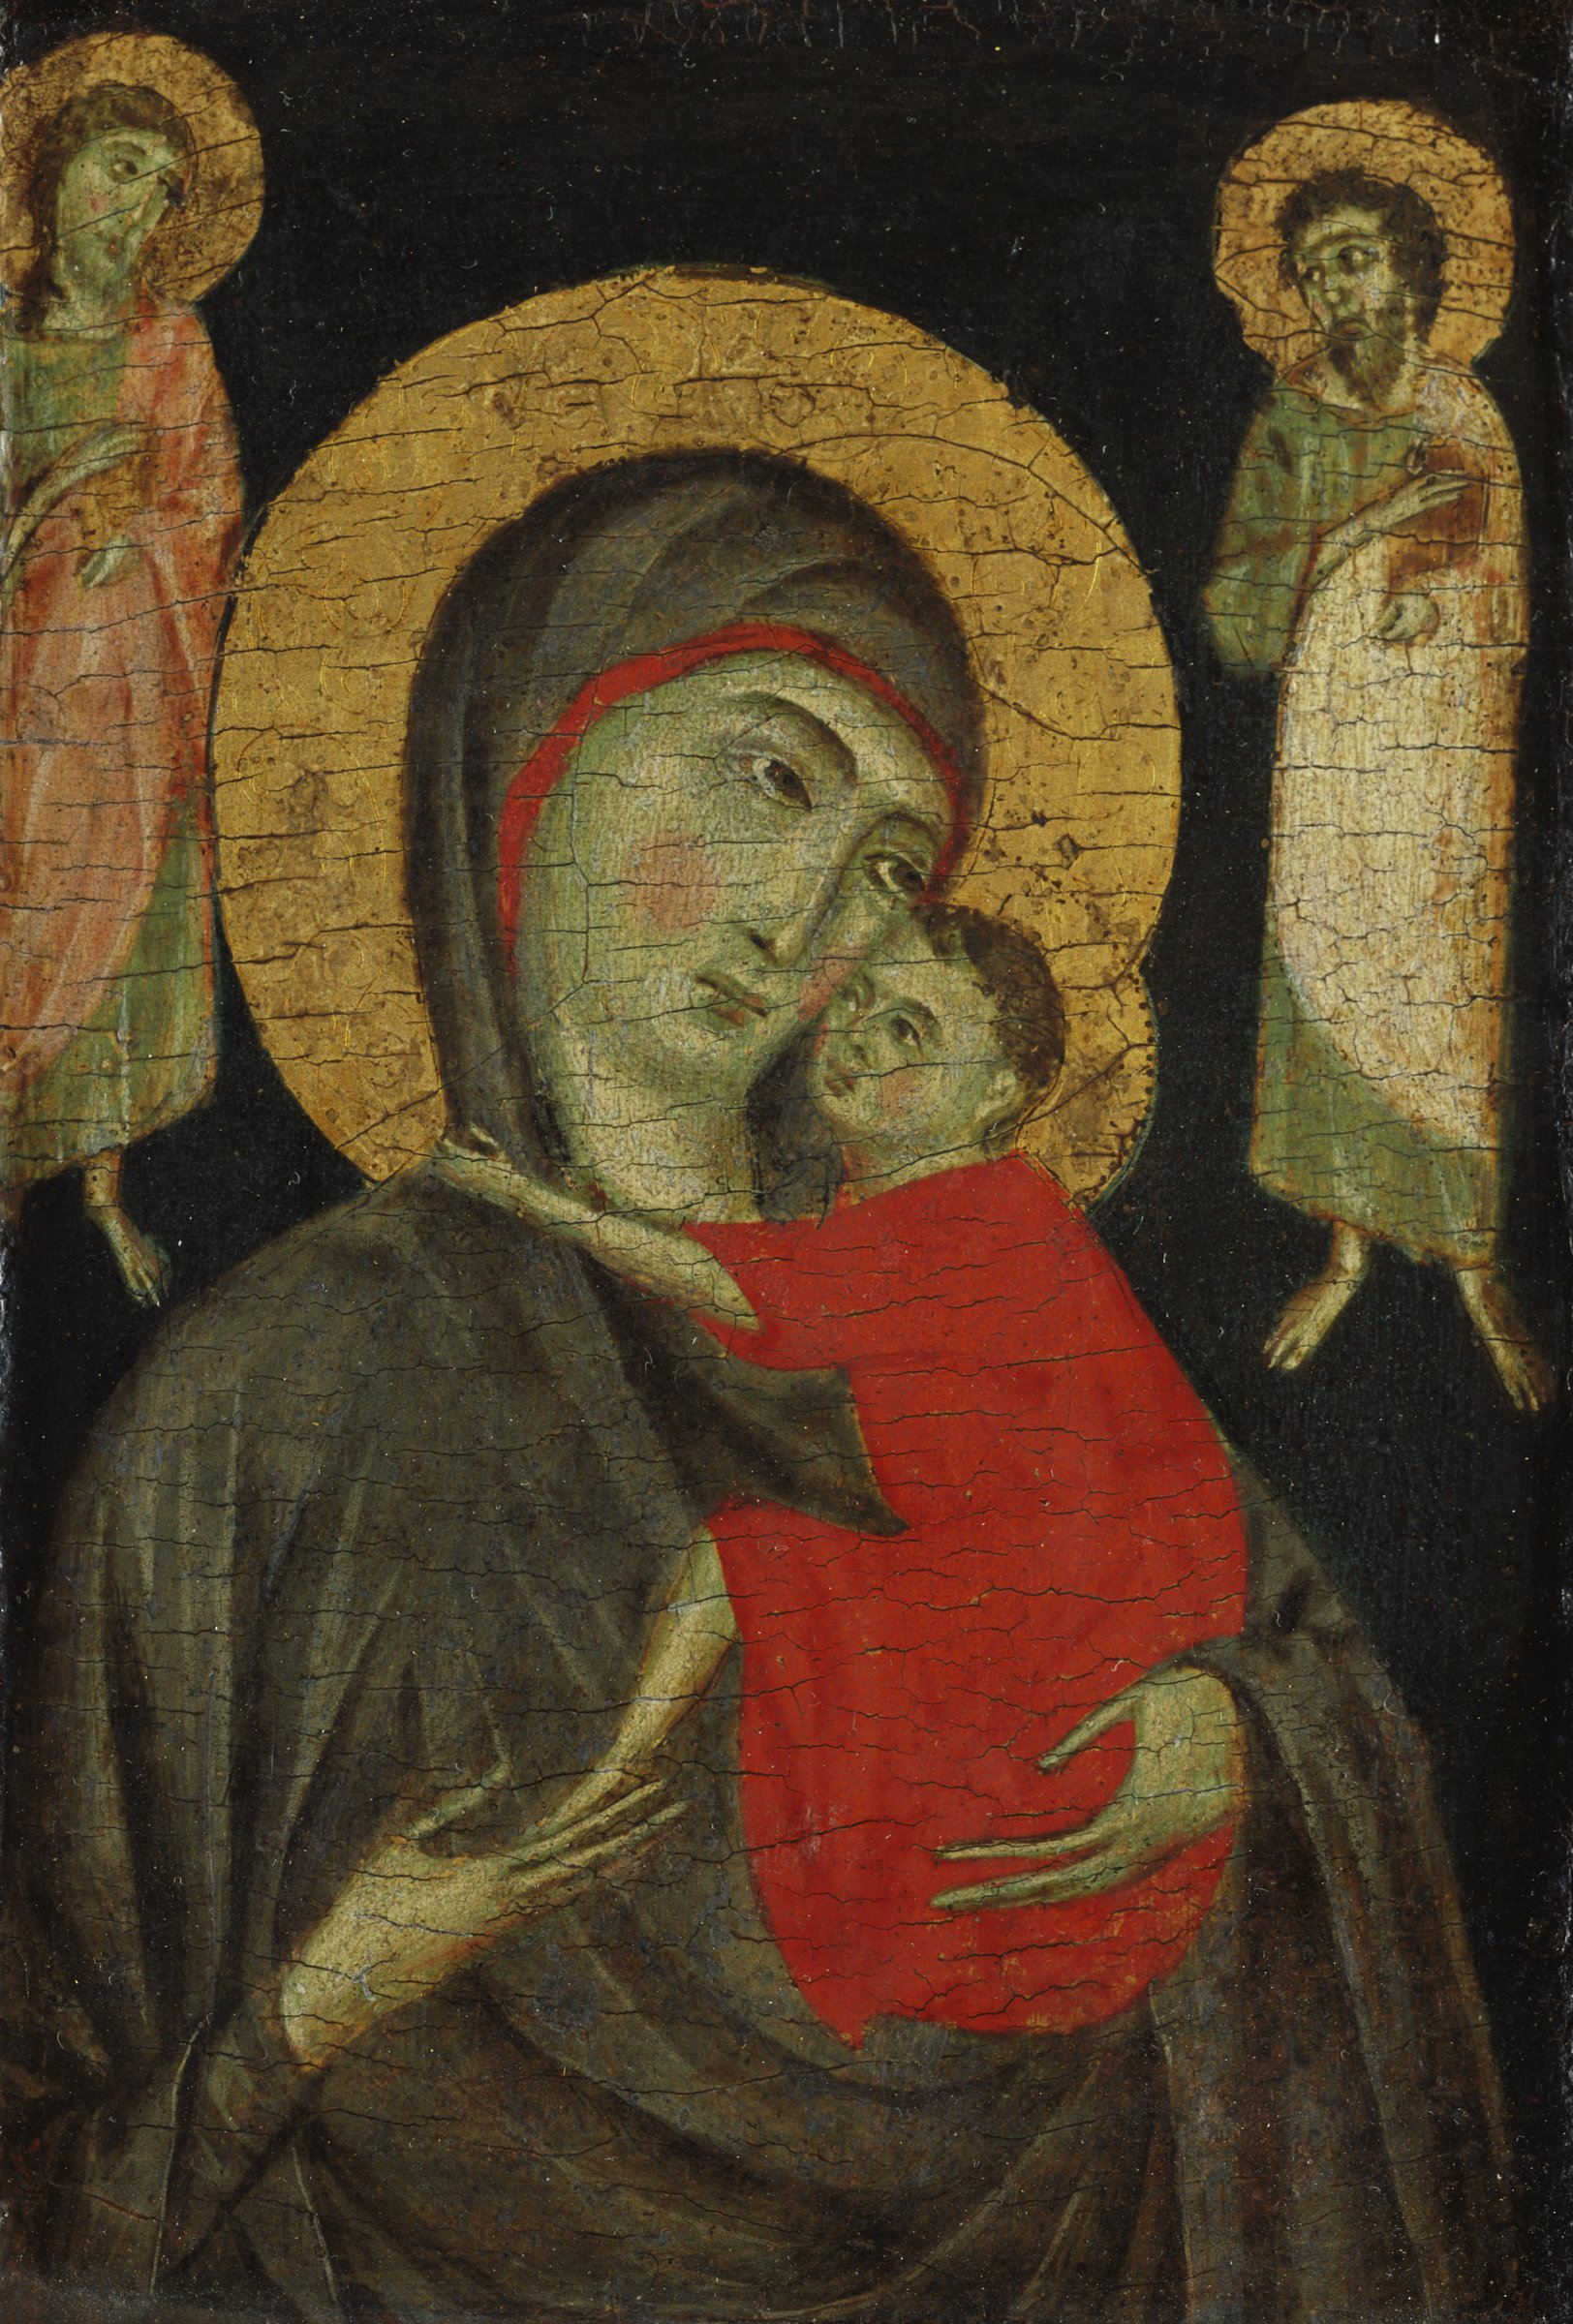 The Madonna holds the Christ Child in her arms. The Child hugs her neck. Two saints depicted in a smaller scale than the Madonna stand on either side of her halo.